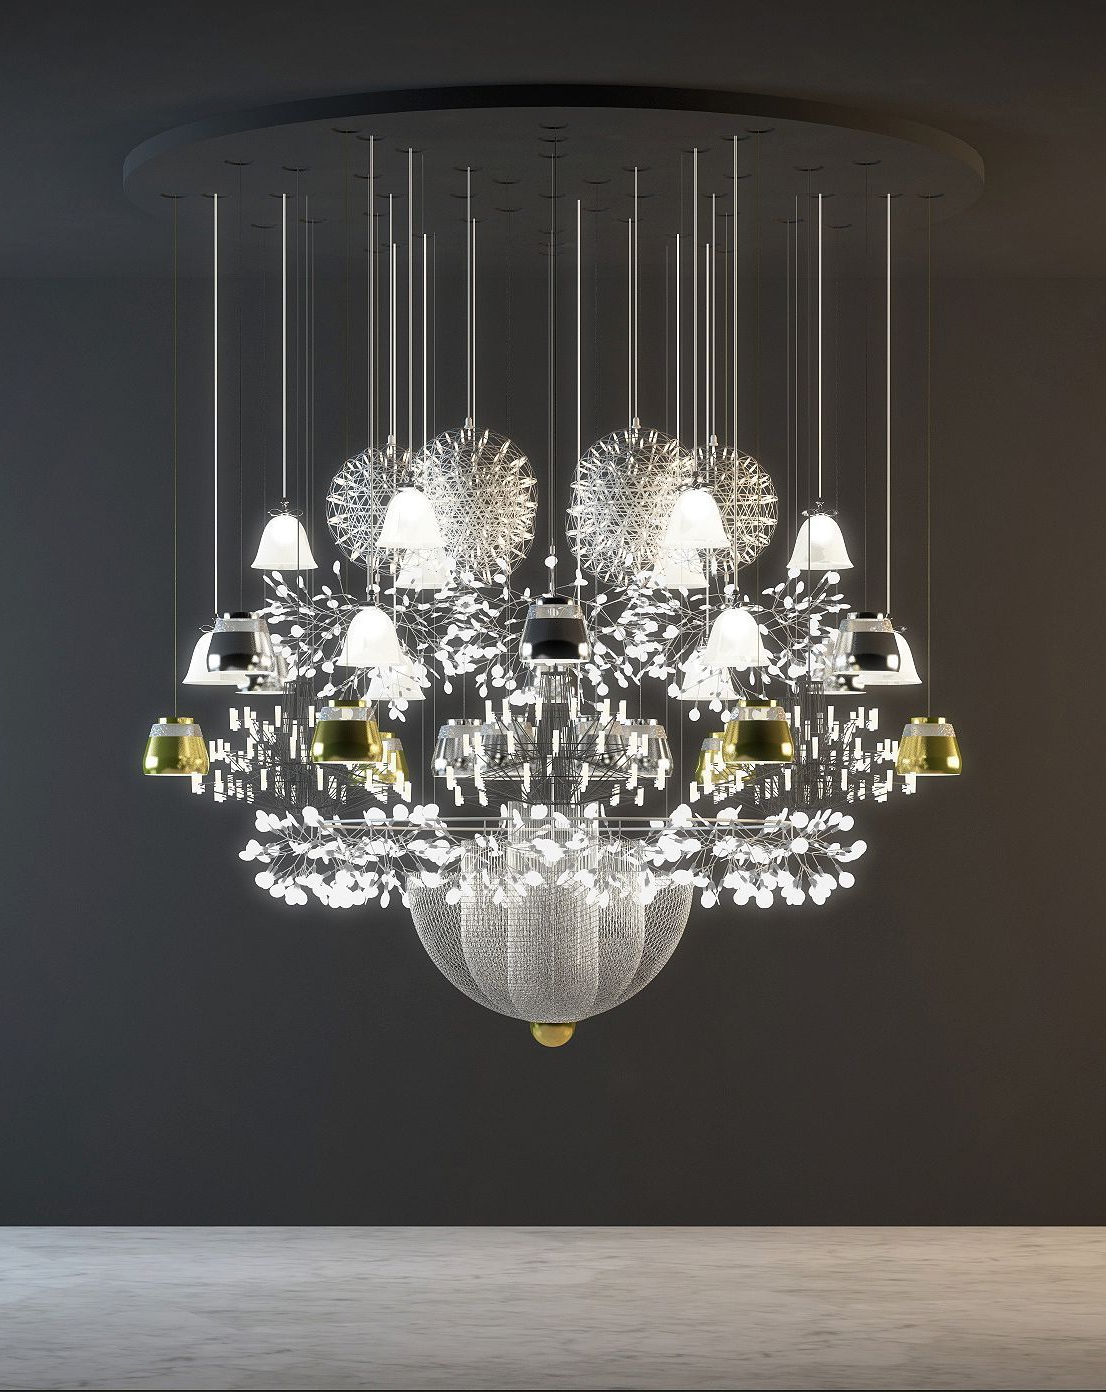 Alverez 4 Light Drum Chandeliers Intended For Popular Pin星钰灯饰厂 On 吊灯 In 2019 (Gallery 17 of 20)